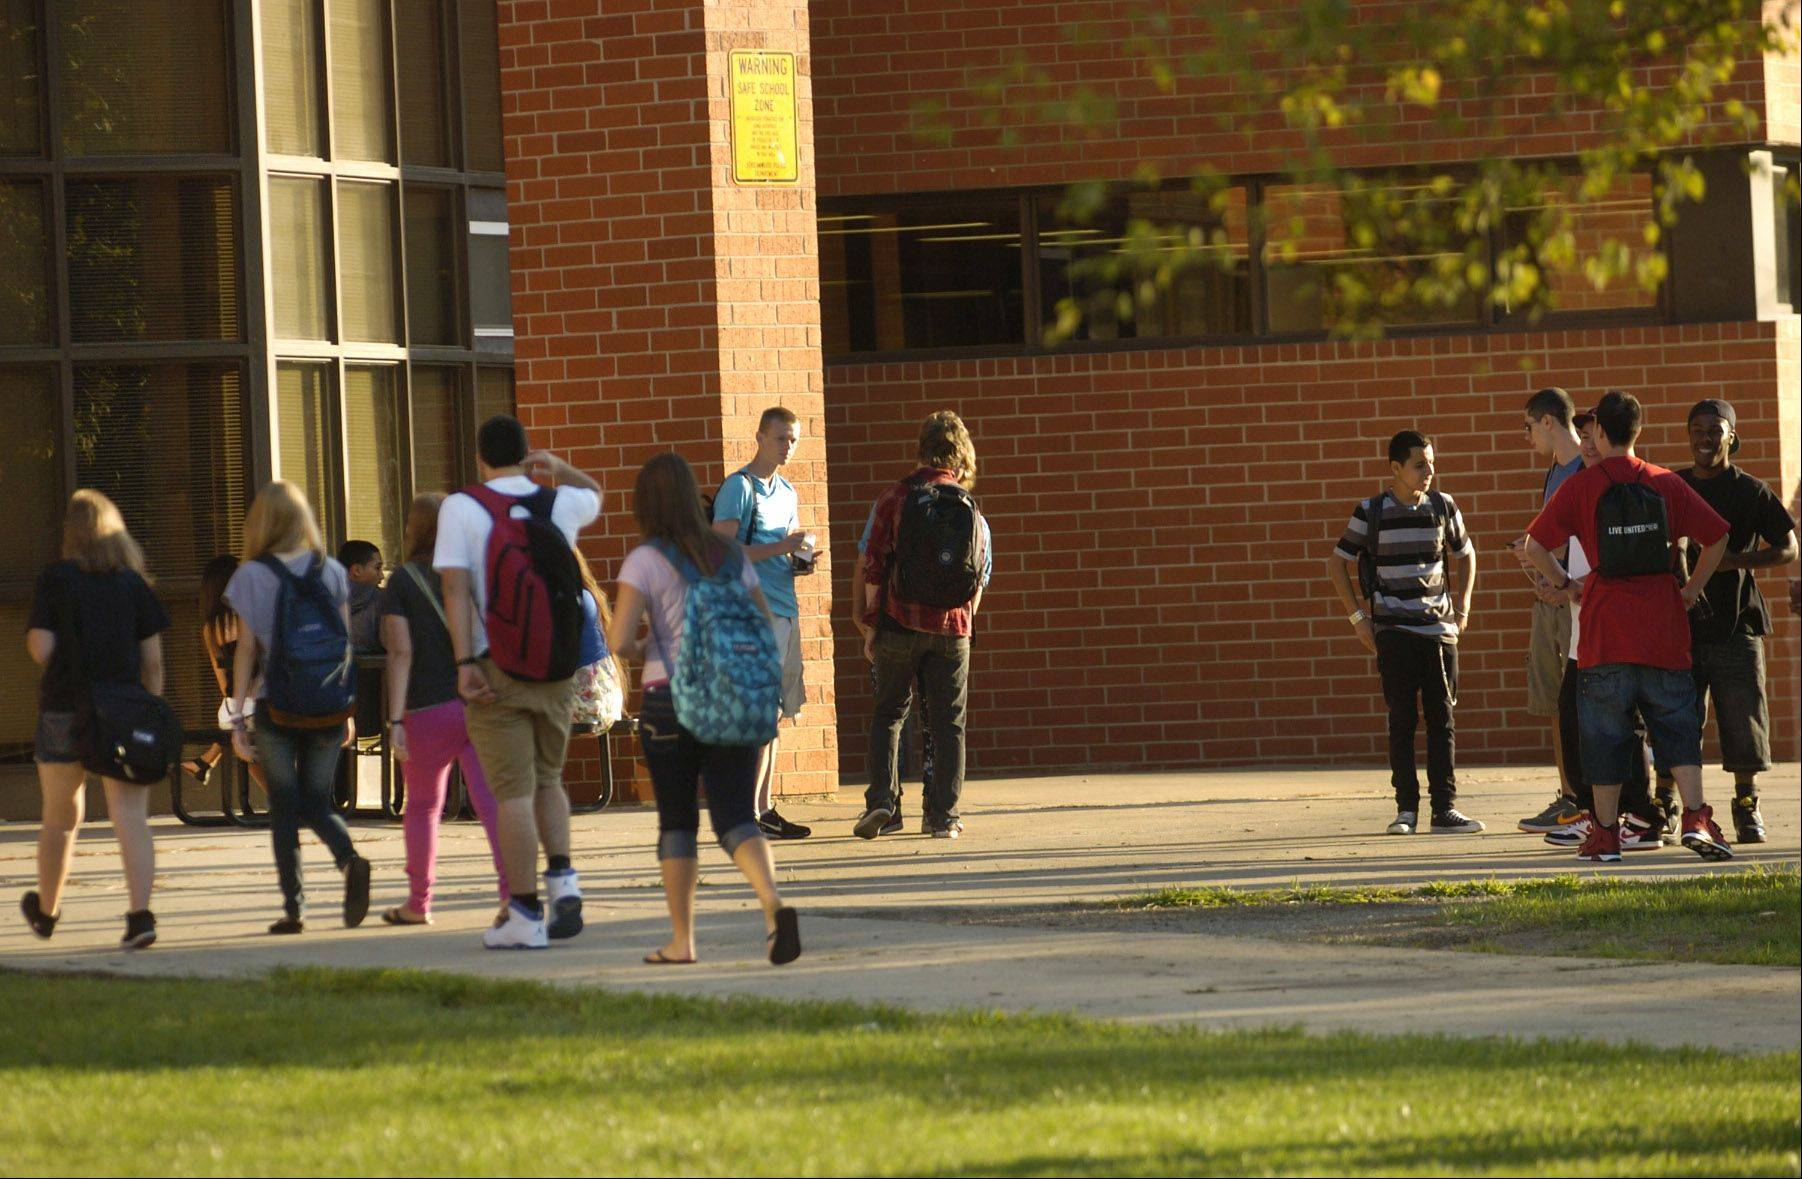 Students make their way through the early morning sunlight to attend the first day of school at Streamwood High School.